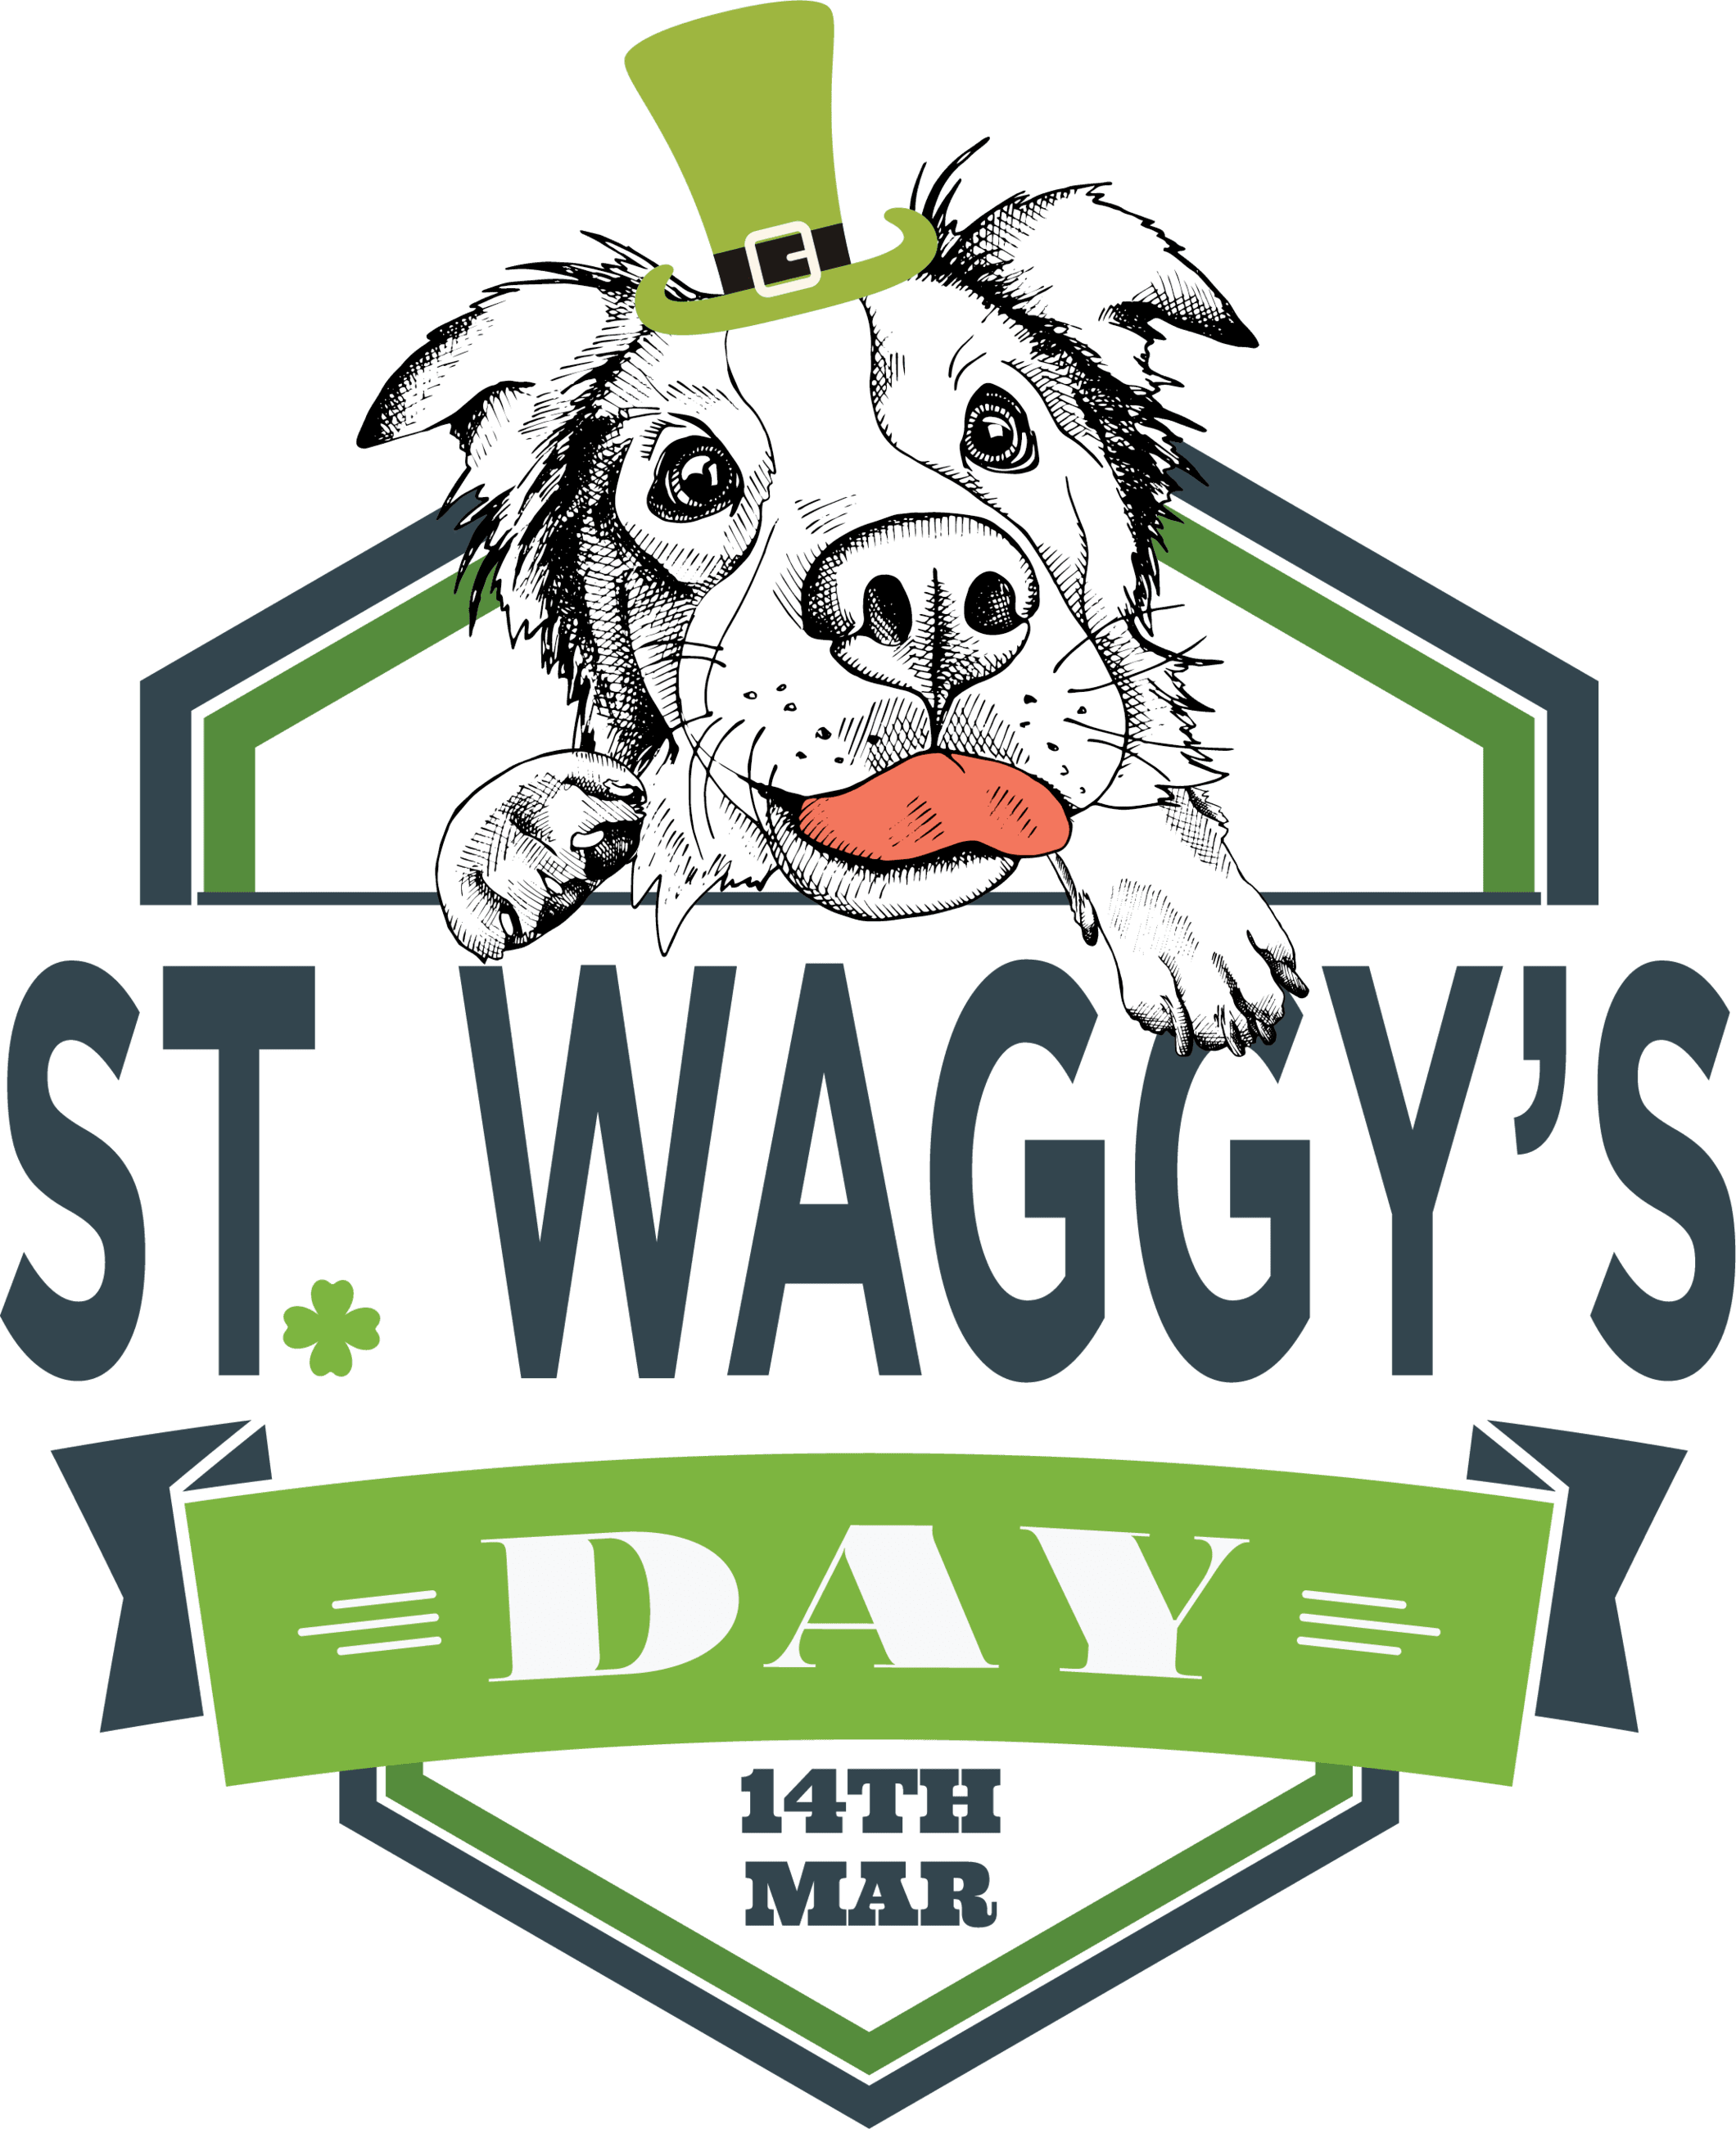 St Waggys Day 2019